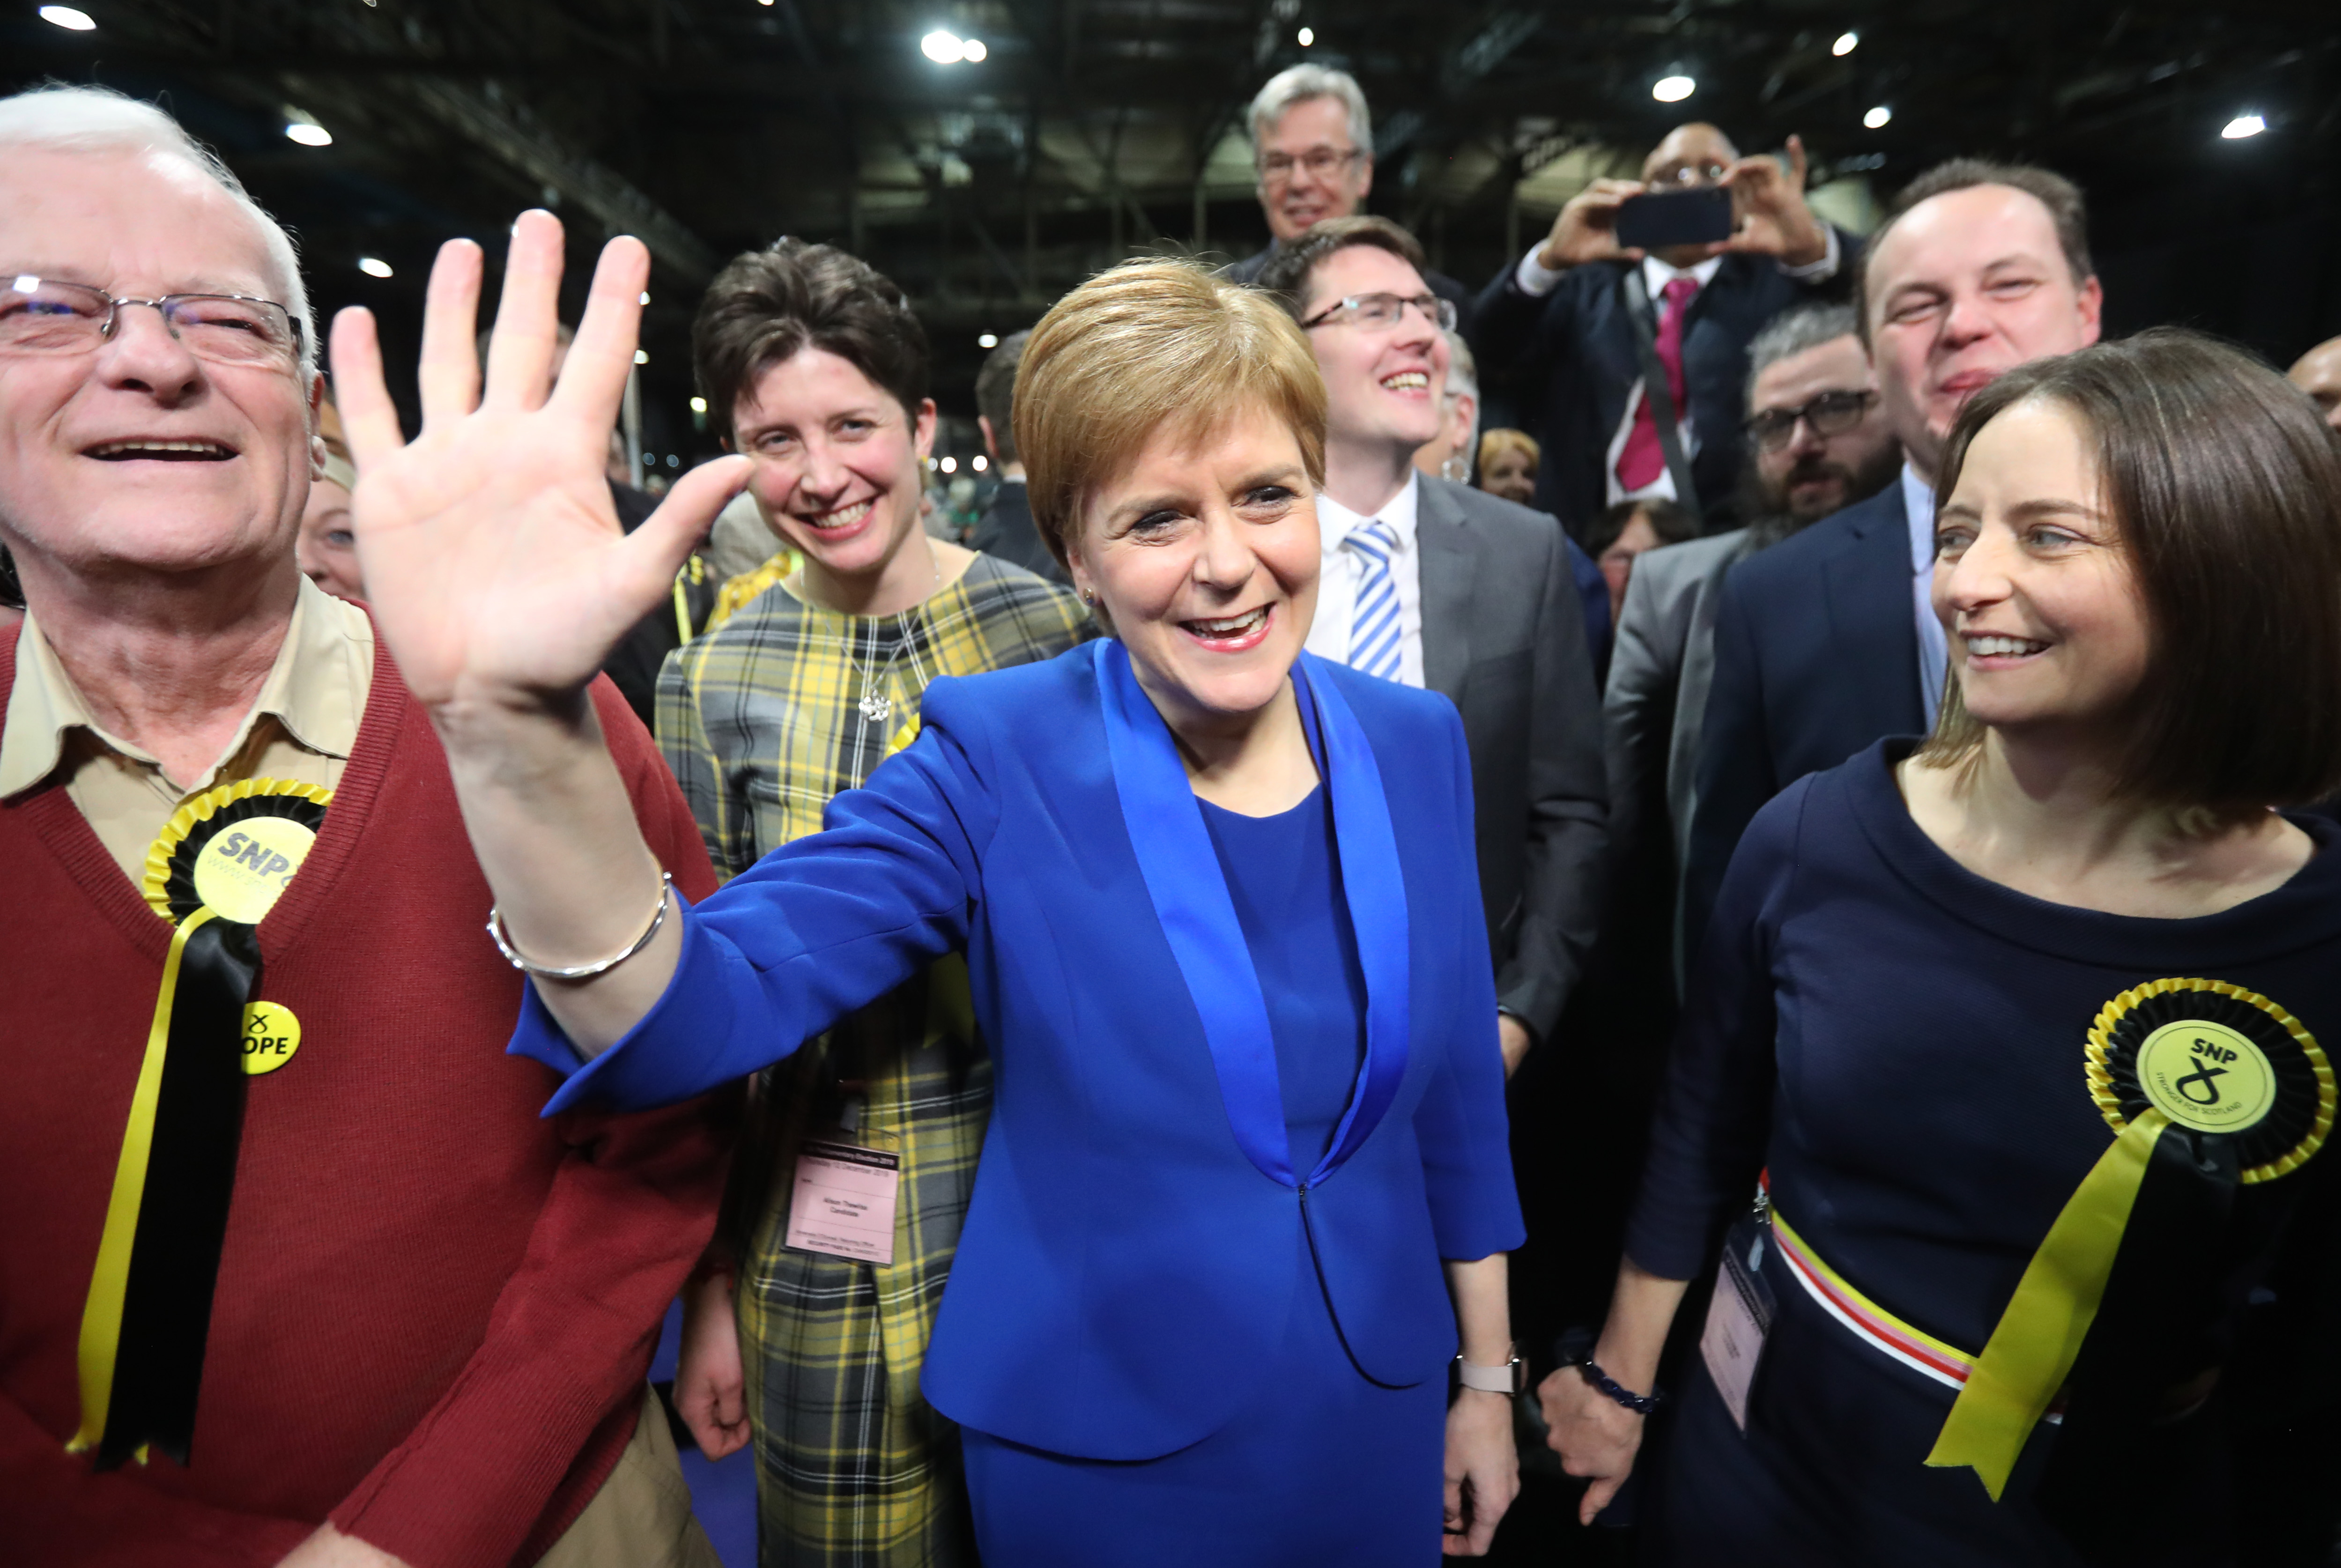 Nicola Sturgeon said that the UK 'cannot hold Scotland in the union'. — Reuters pic